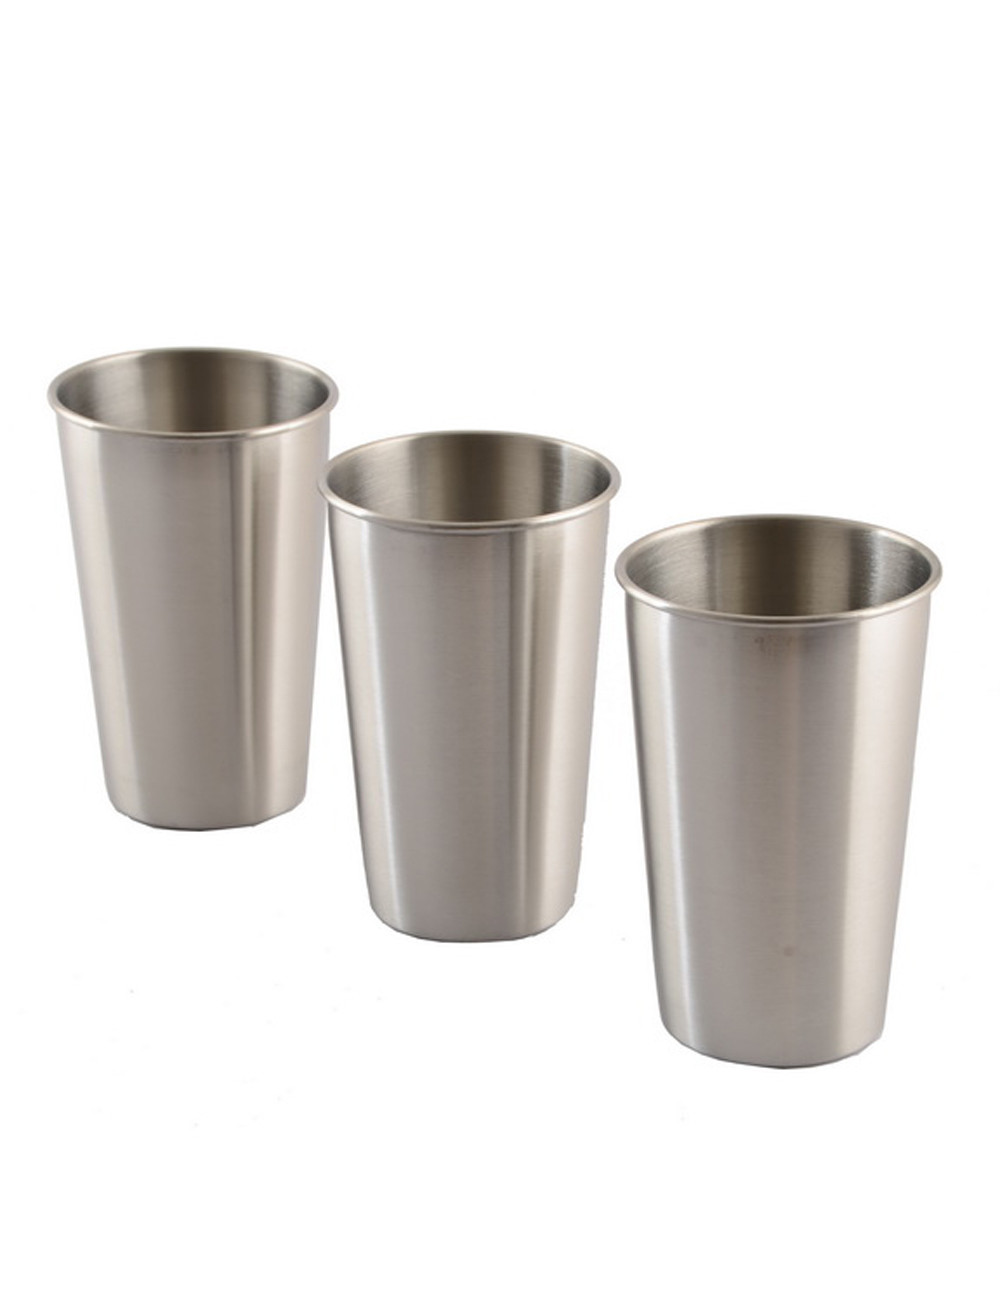 350/500ML Stainless Steel Cups With Juice Beer Glass Portion Cups 16oz Tumbler Pint Metal Kitchen Drinking Mug Bar Supply#